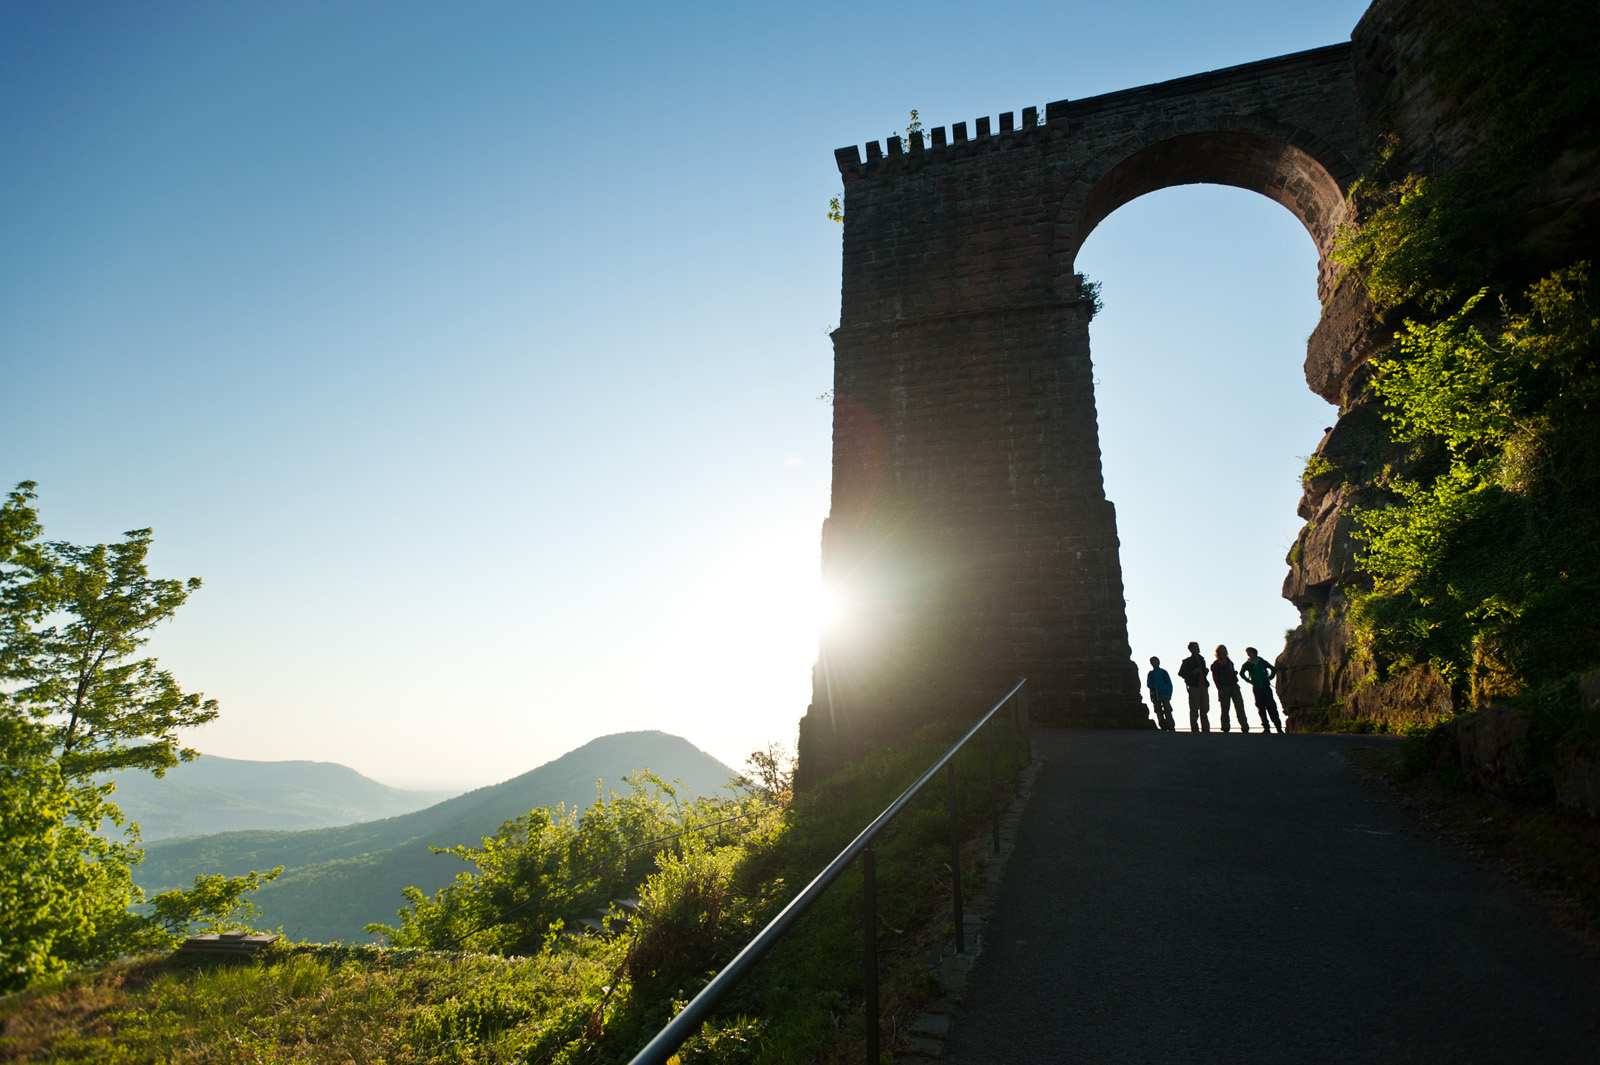 Sunset at Trifels Castle, Palatinate